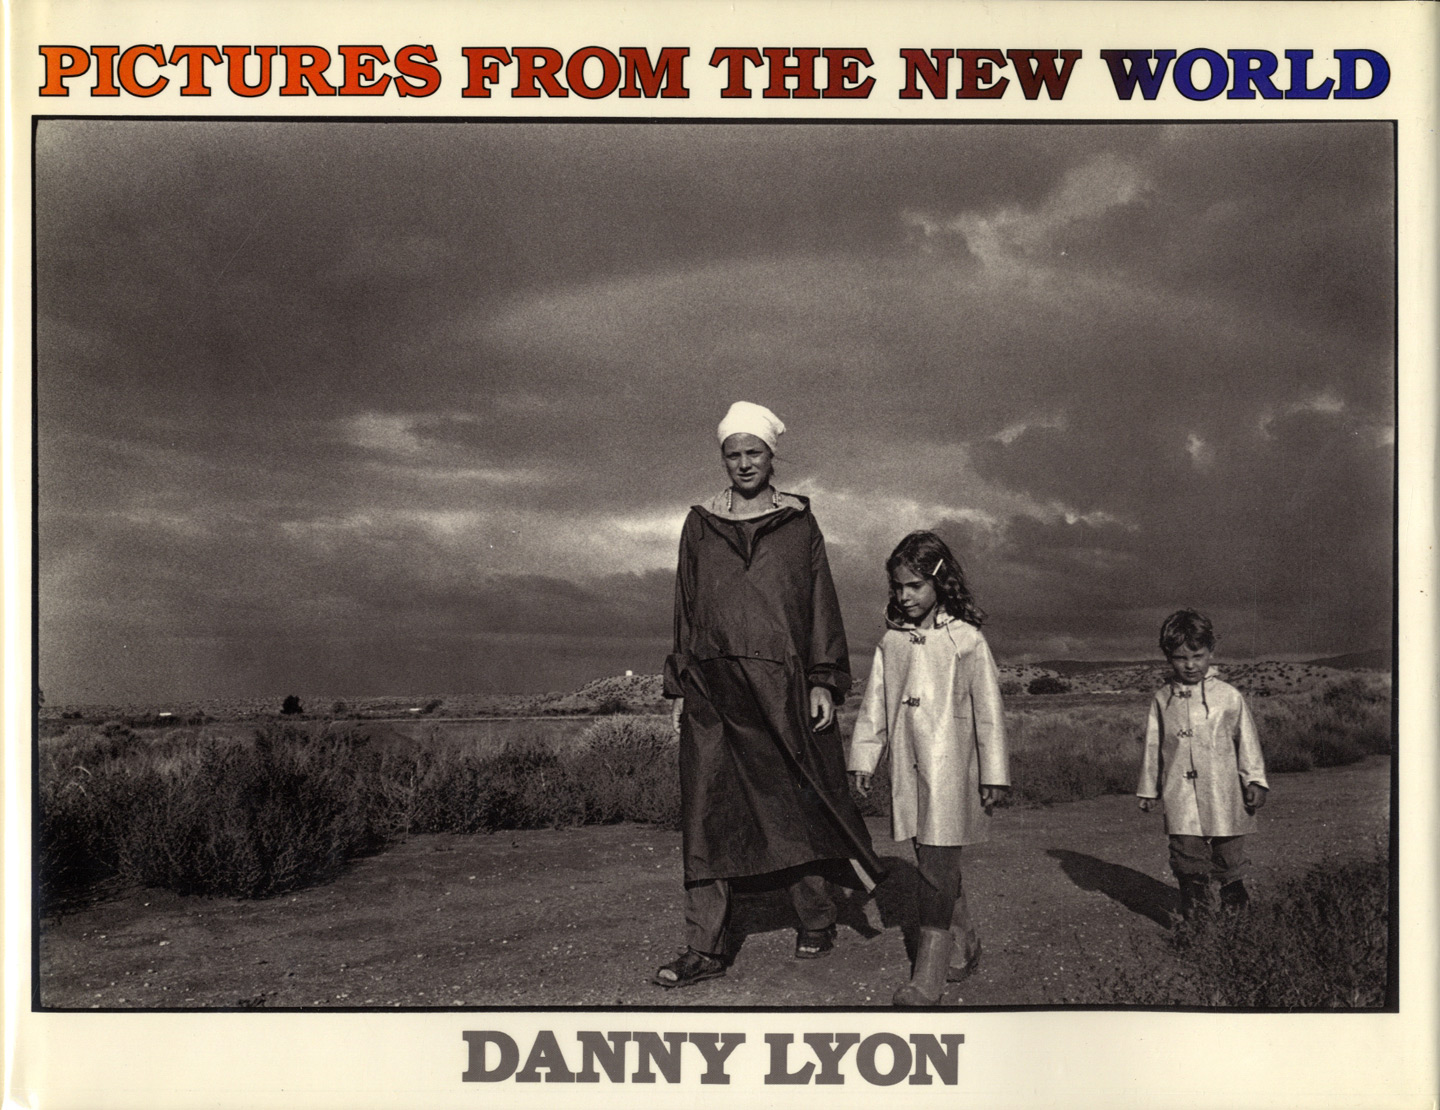 Danny Lyon: Pictures from the New World